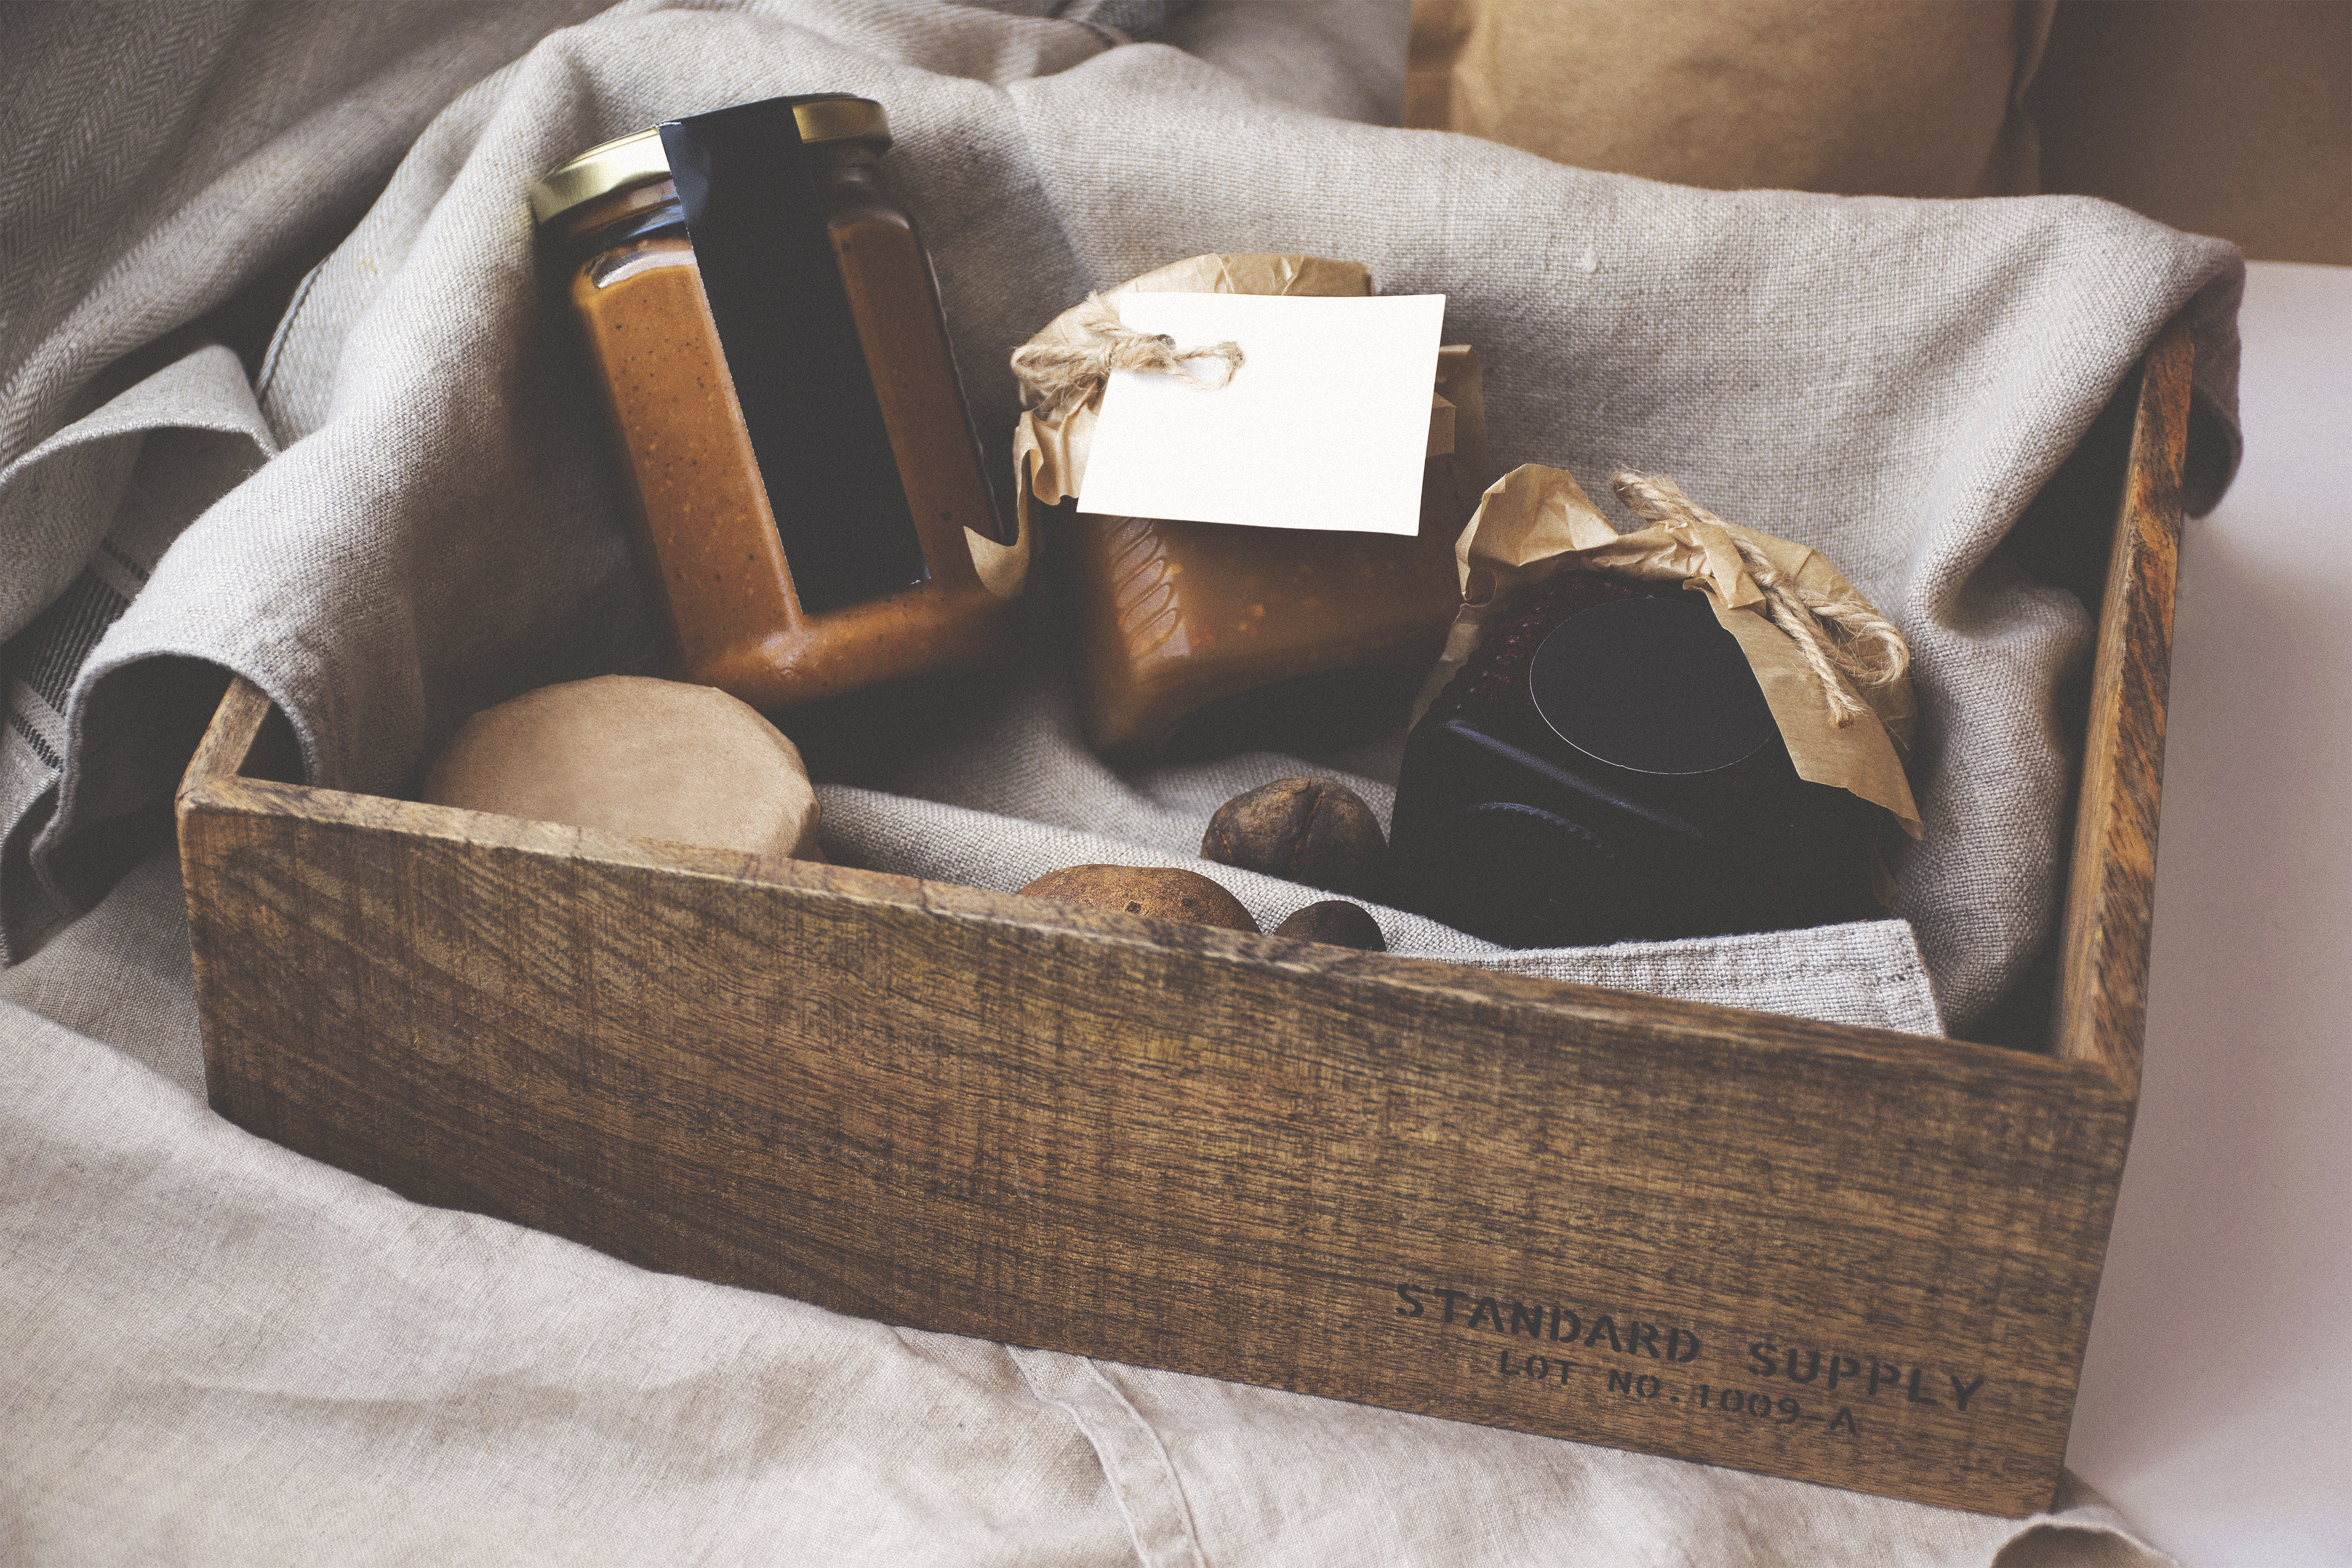 Altitude media package products wooden box filled with perishable foods and jars